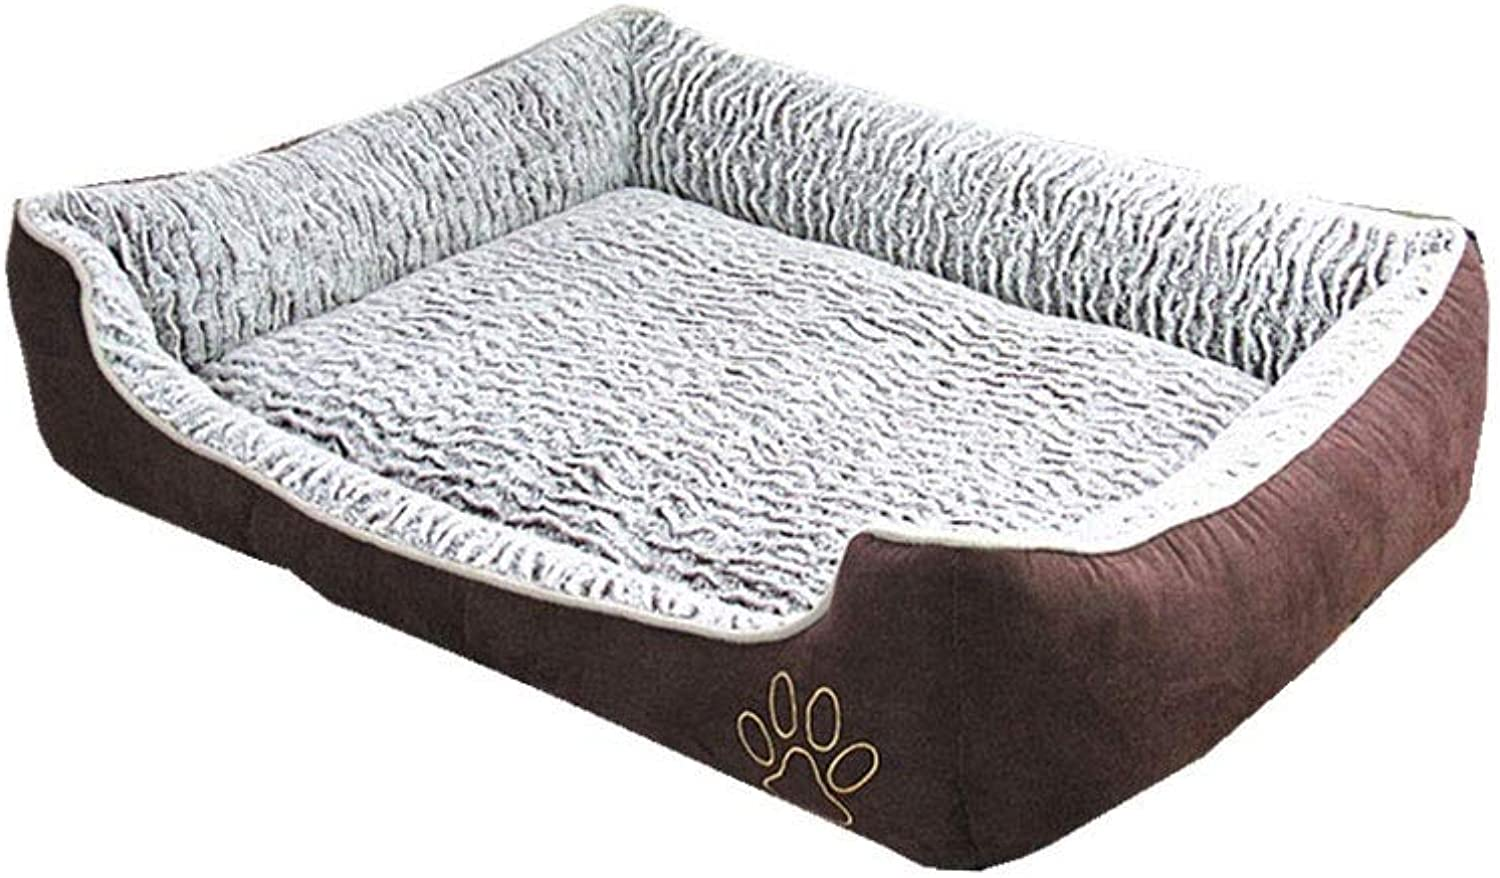 Alapet pink Velvet Wave Pattern Four Seasons Universal Kennel, Breathable and Not Wrinkle Dog Bed,Removable Dog Pad, Soft and Comfortable, Three-Dimensional PP Cotton Padding, Clean and Hygienic